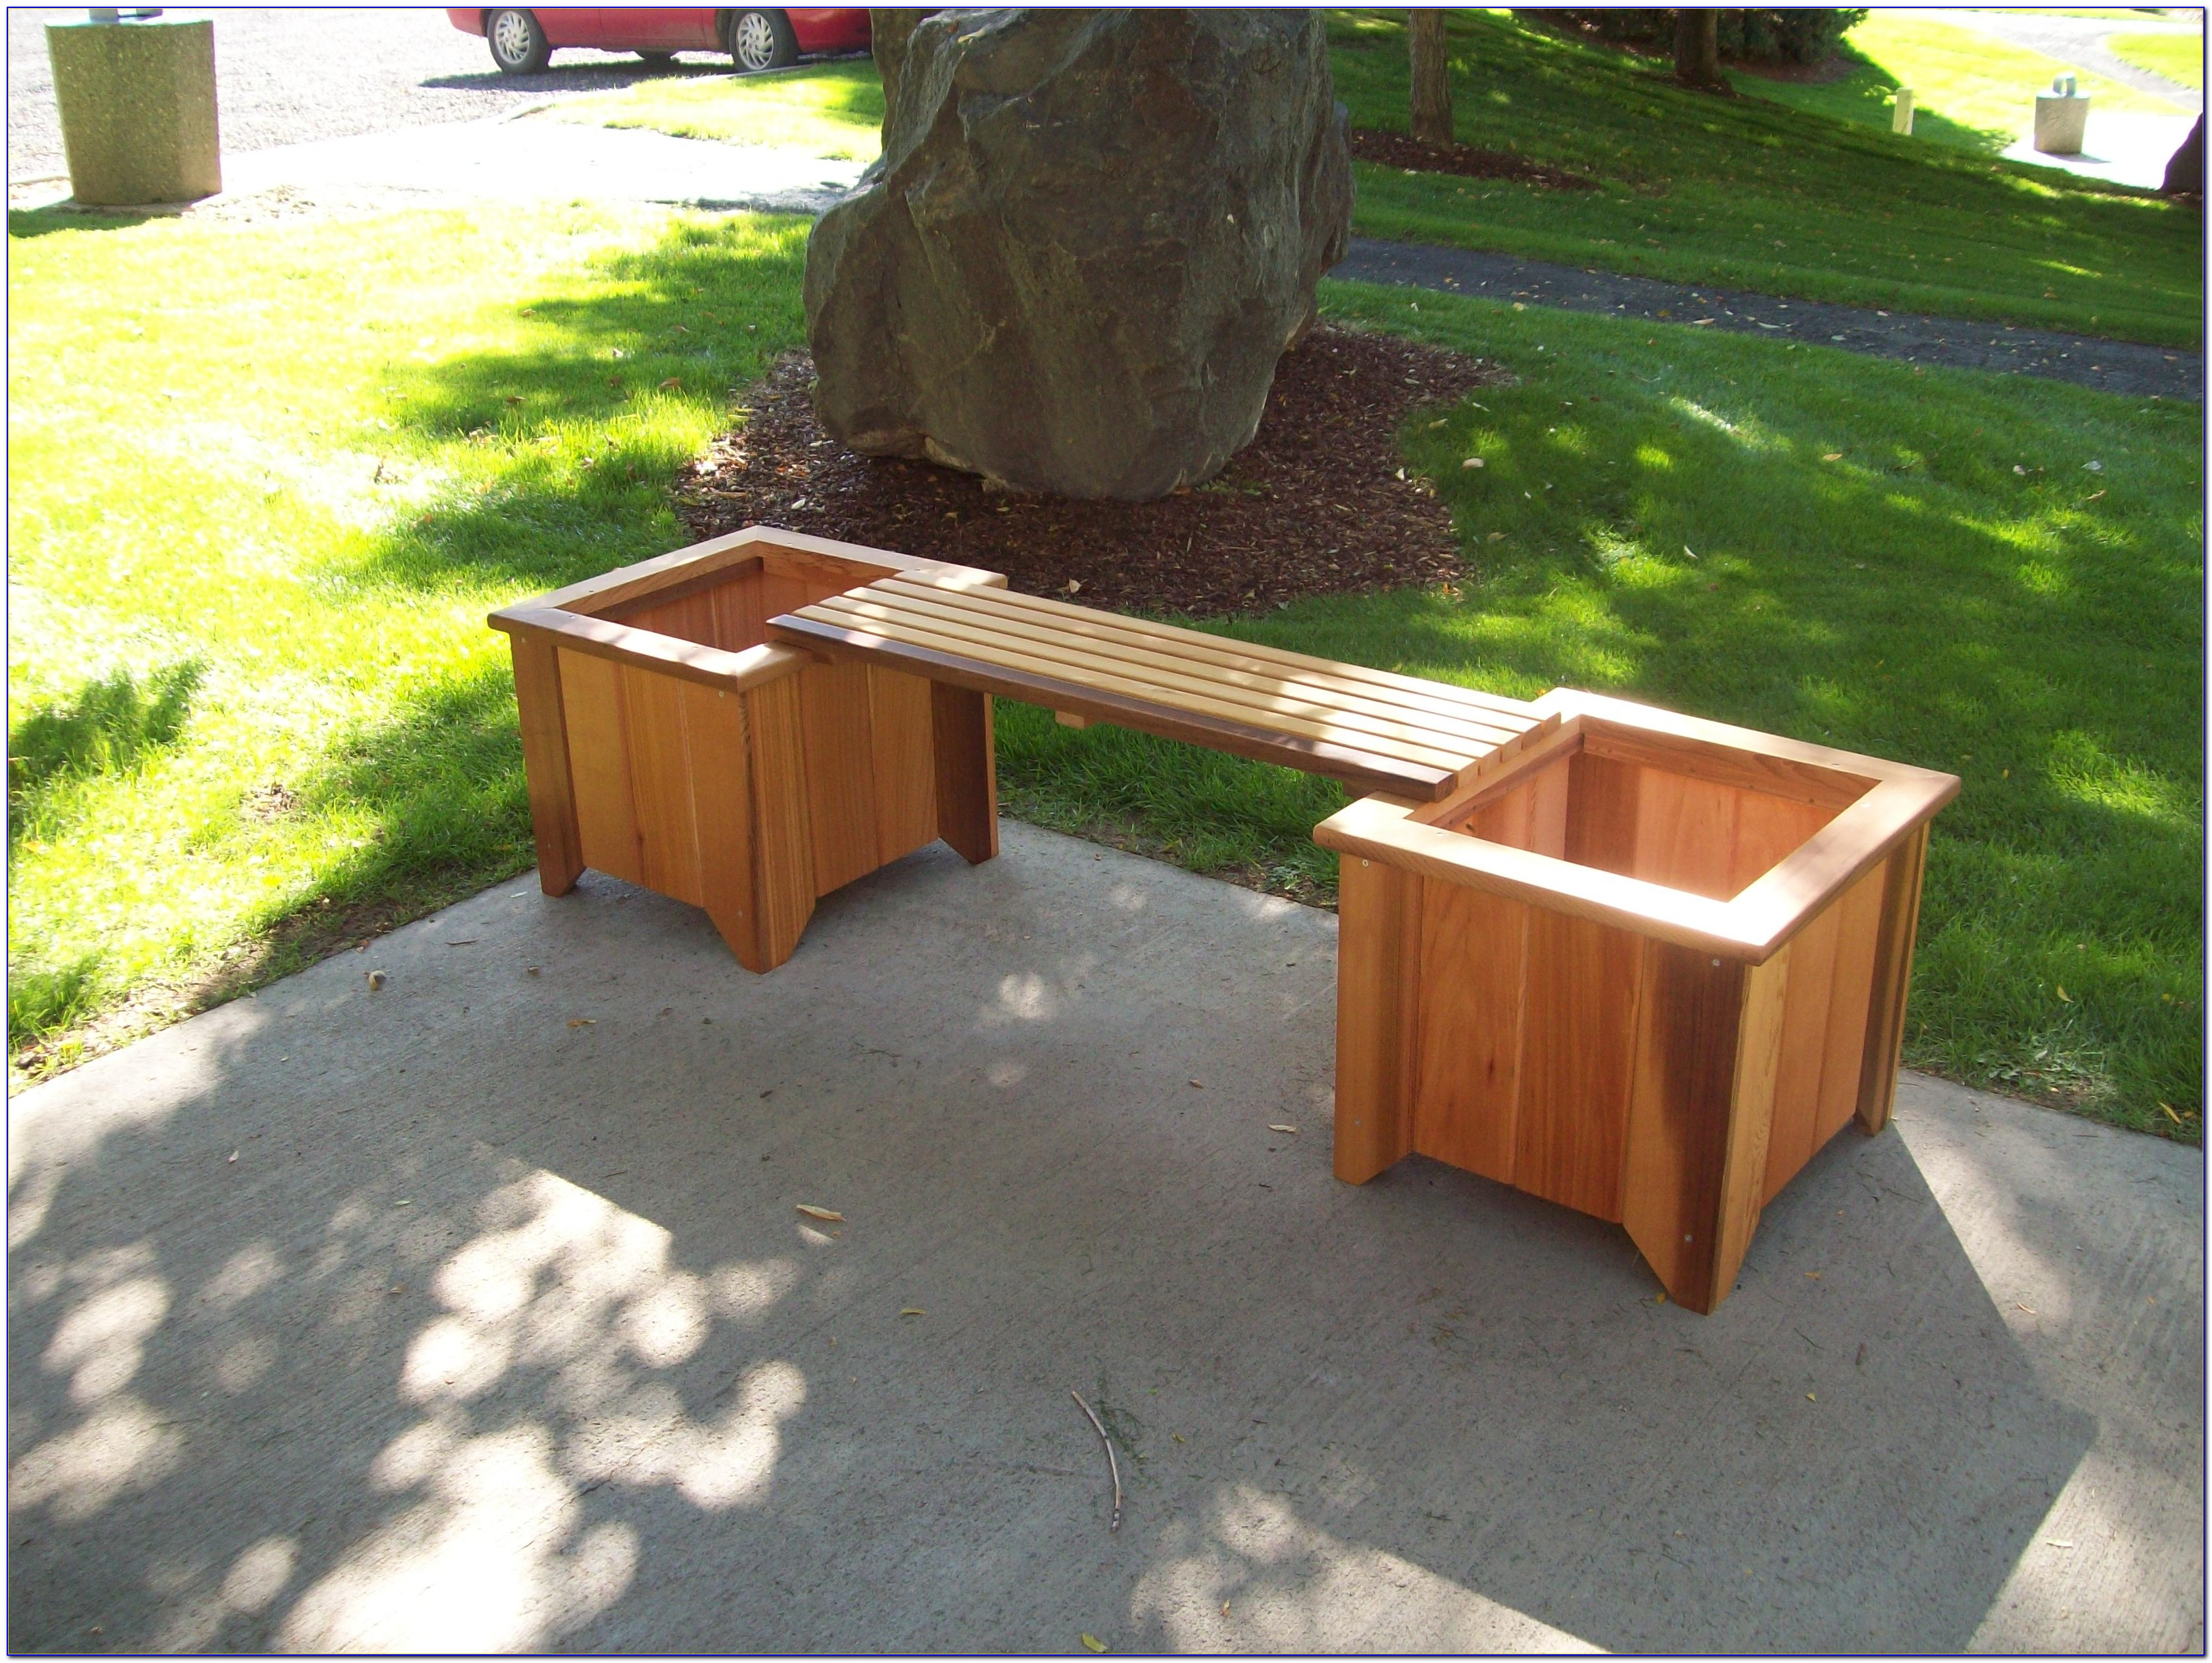 Wooden Bench With Planter Boxes